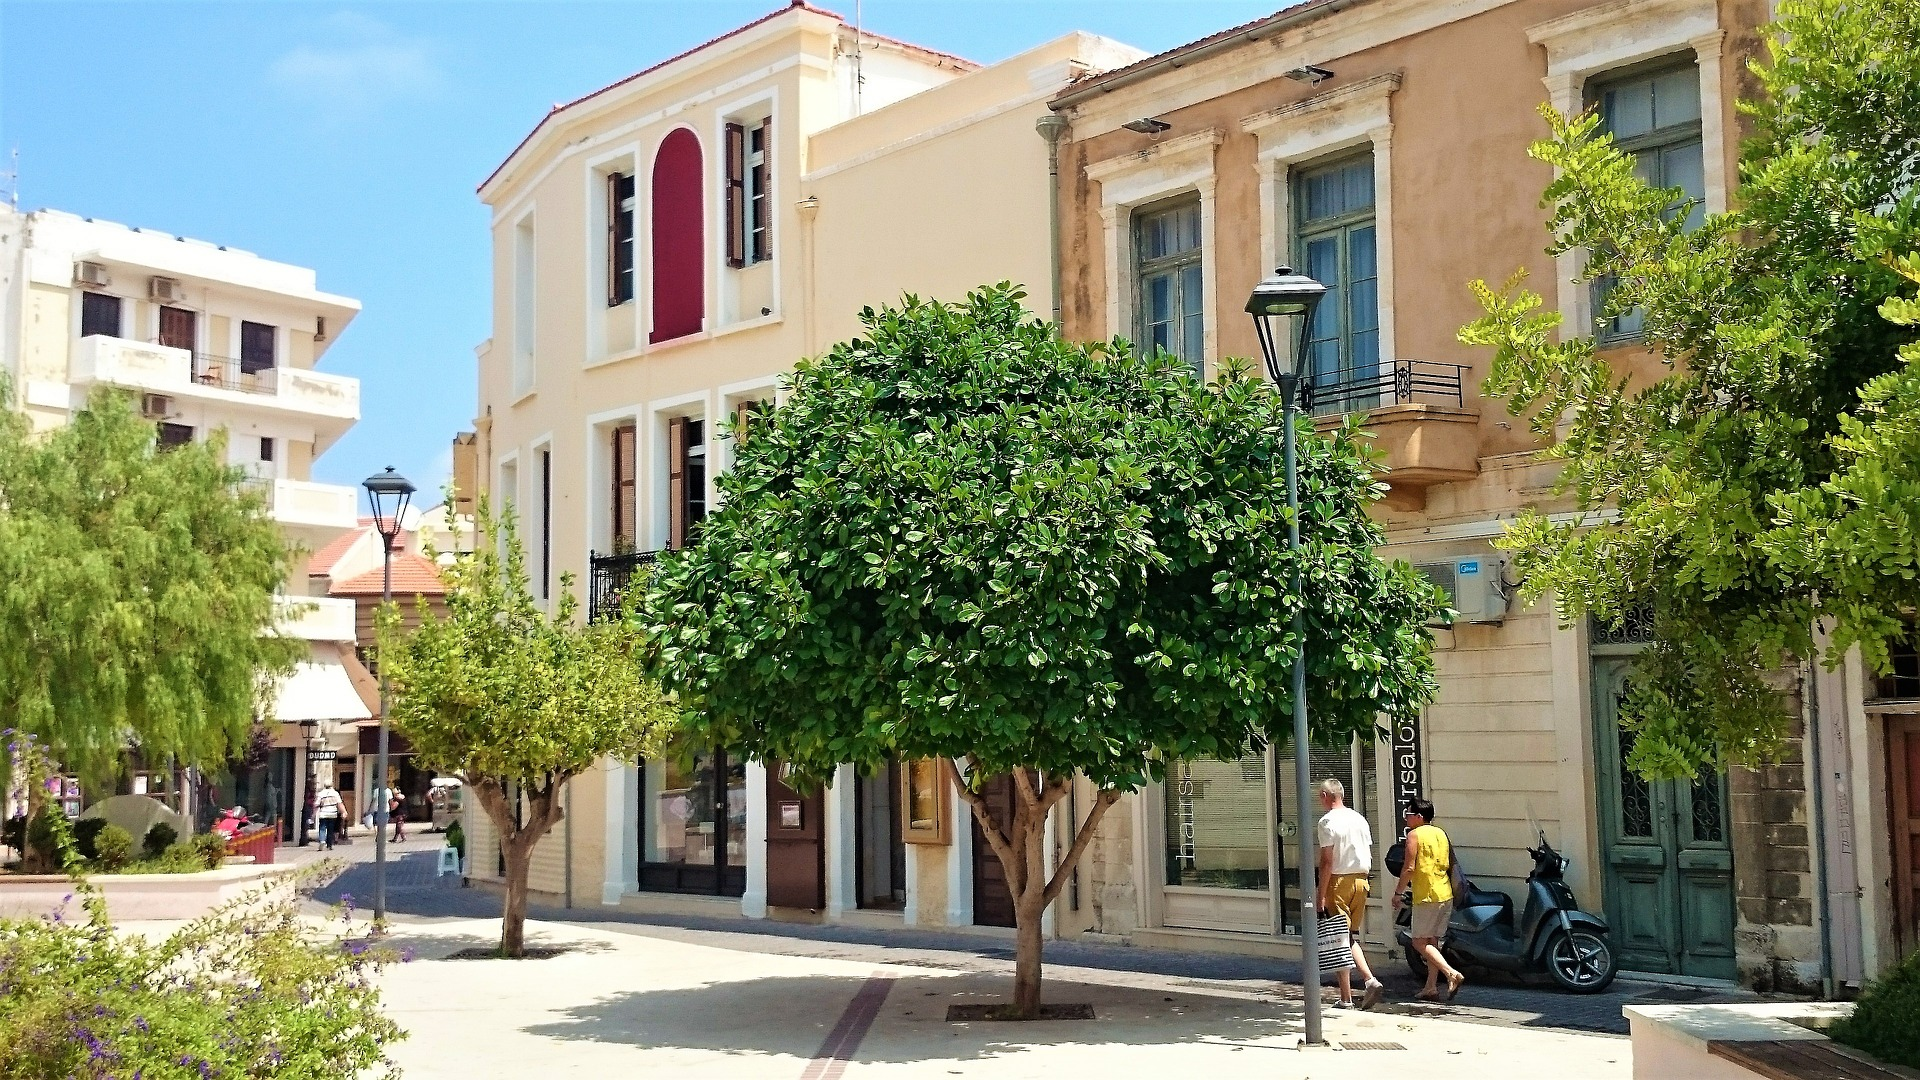 Sightseeing tours in Crete